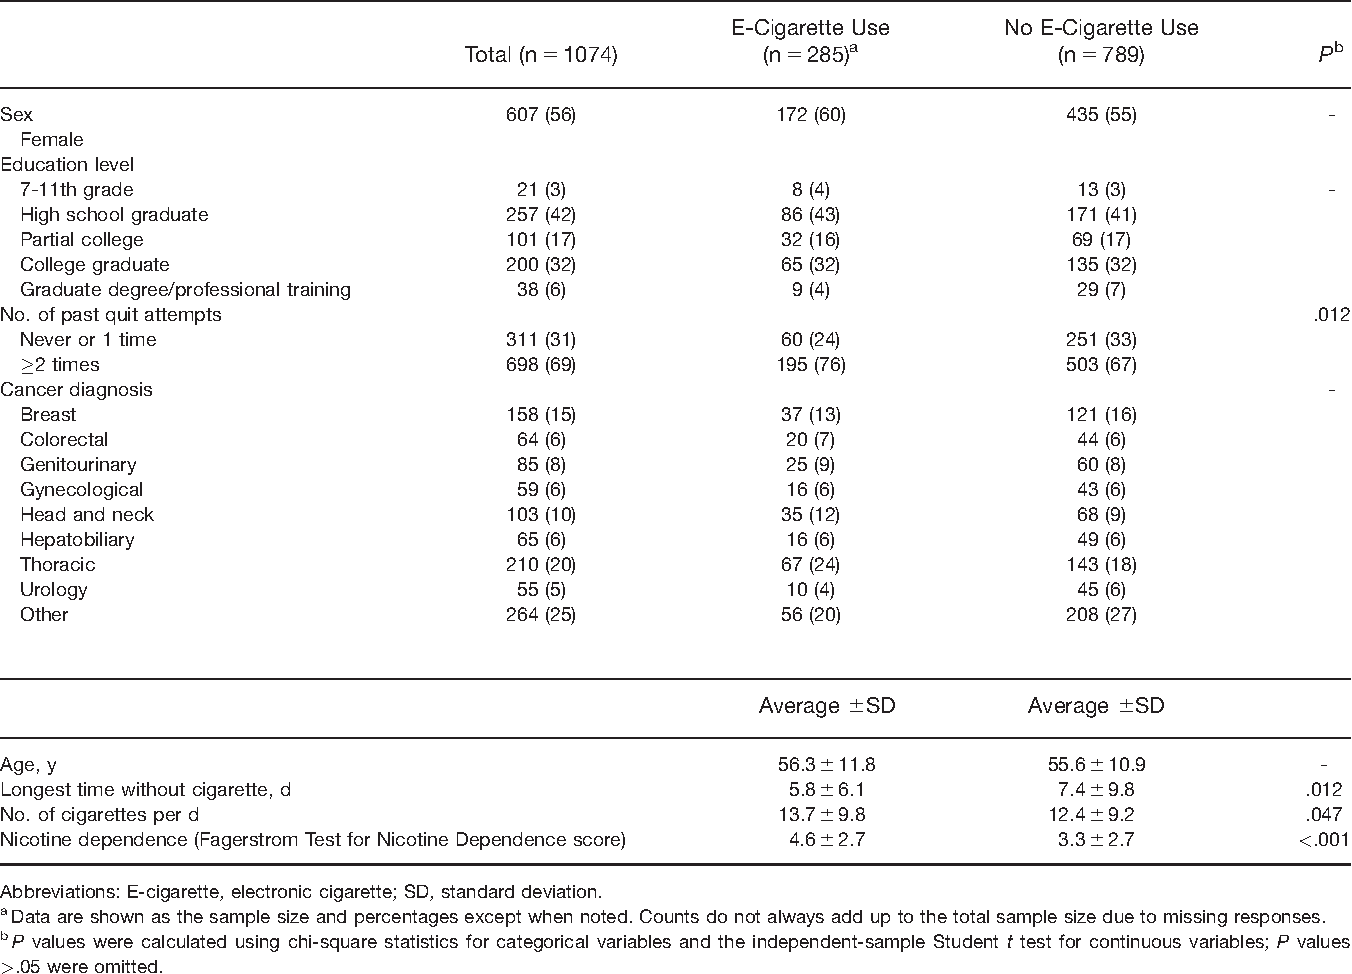 TABLE I. Prevalence of E-Cigarette Use at Intake by Patient Characteristics (n51074)